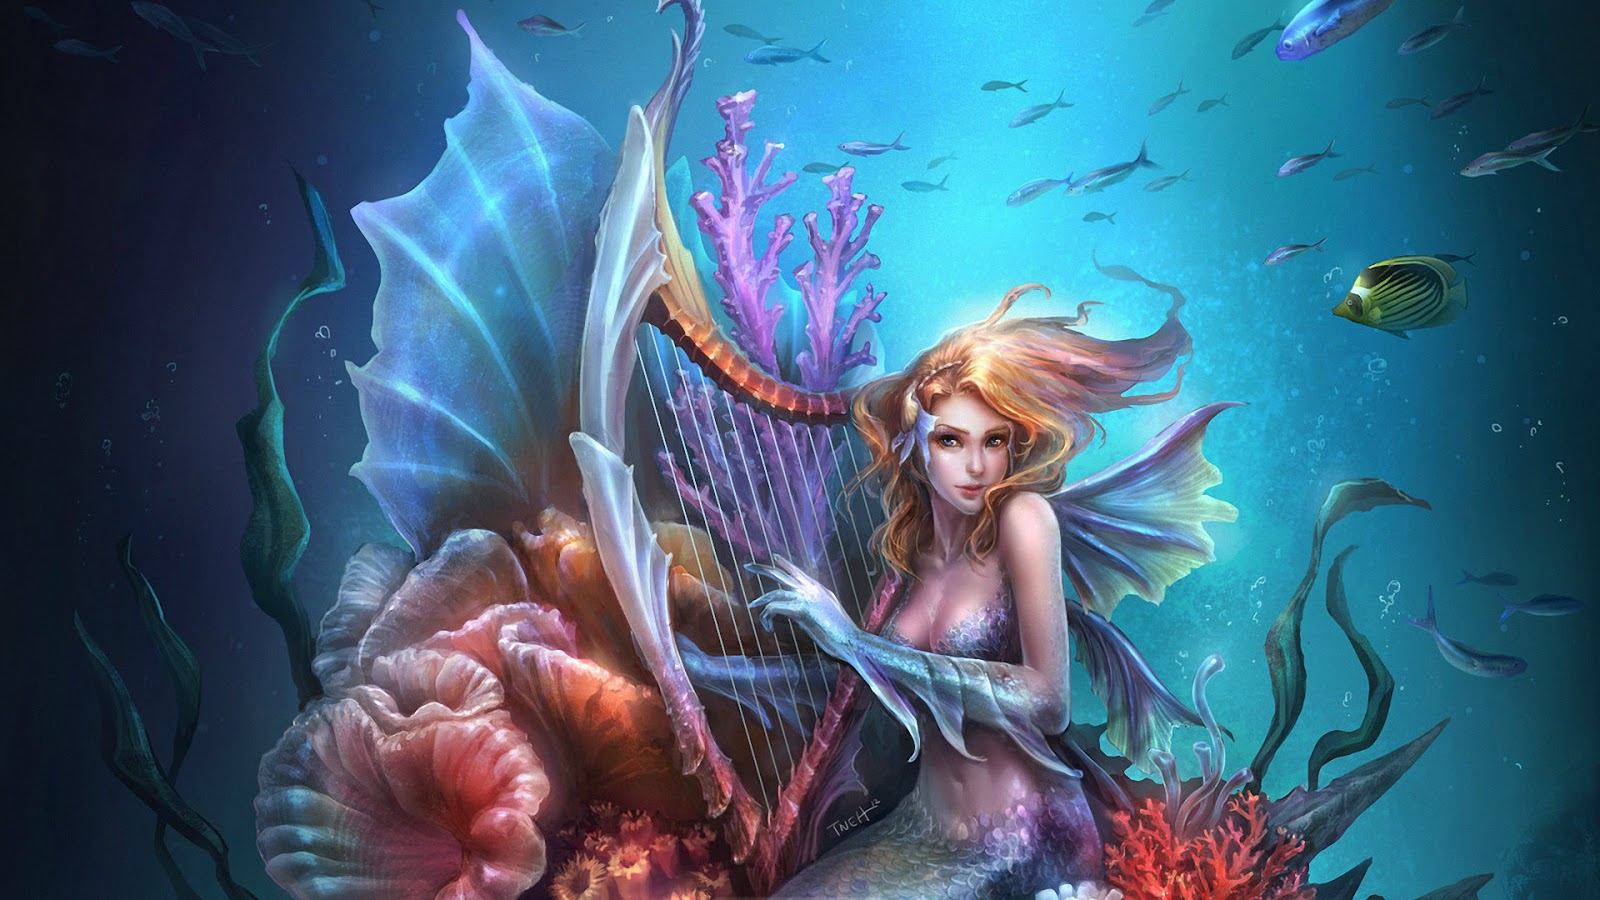 mermaid-queen-playing-music-beauty-sea-fish.jpg